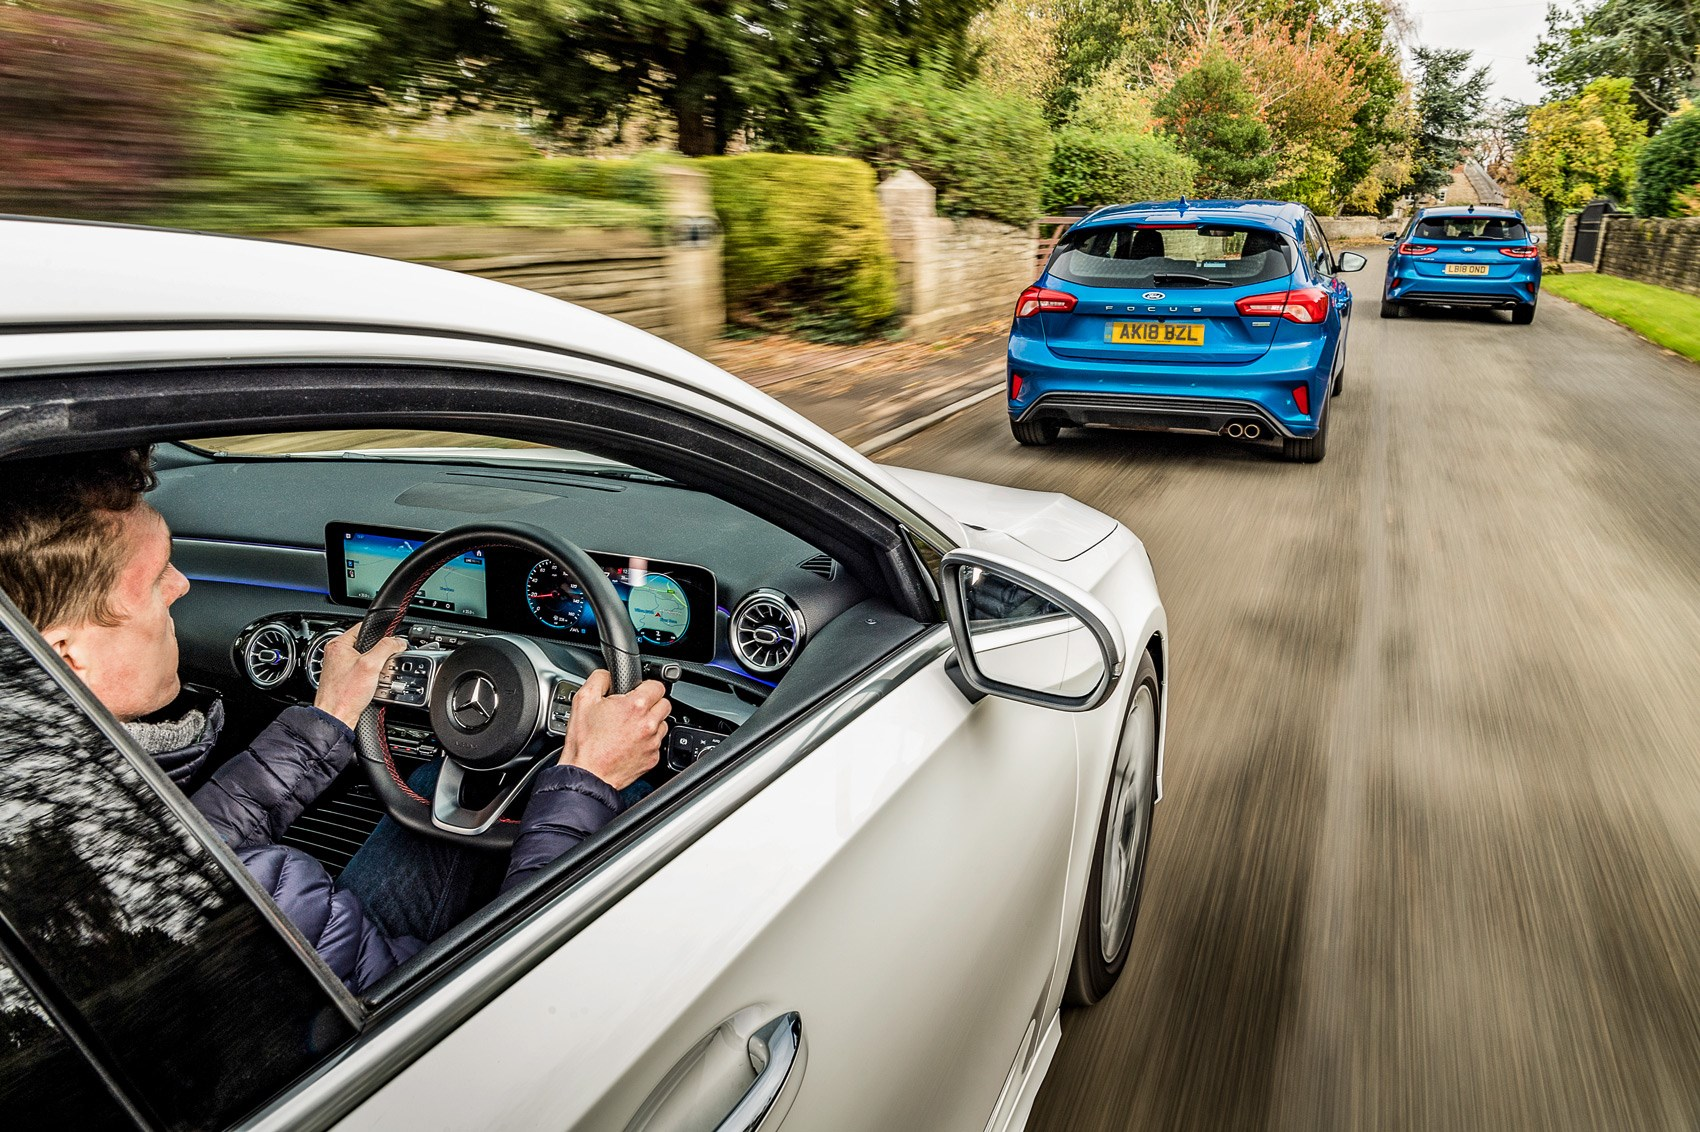 Hatchback shootout: Ford Focus vs Kia Ceed vs A-class